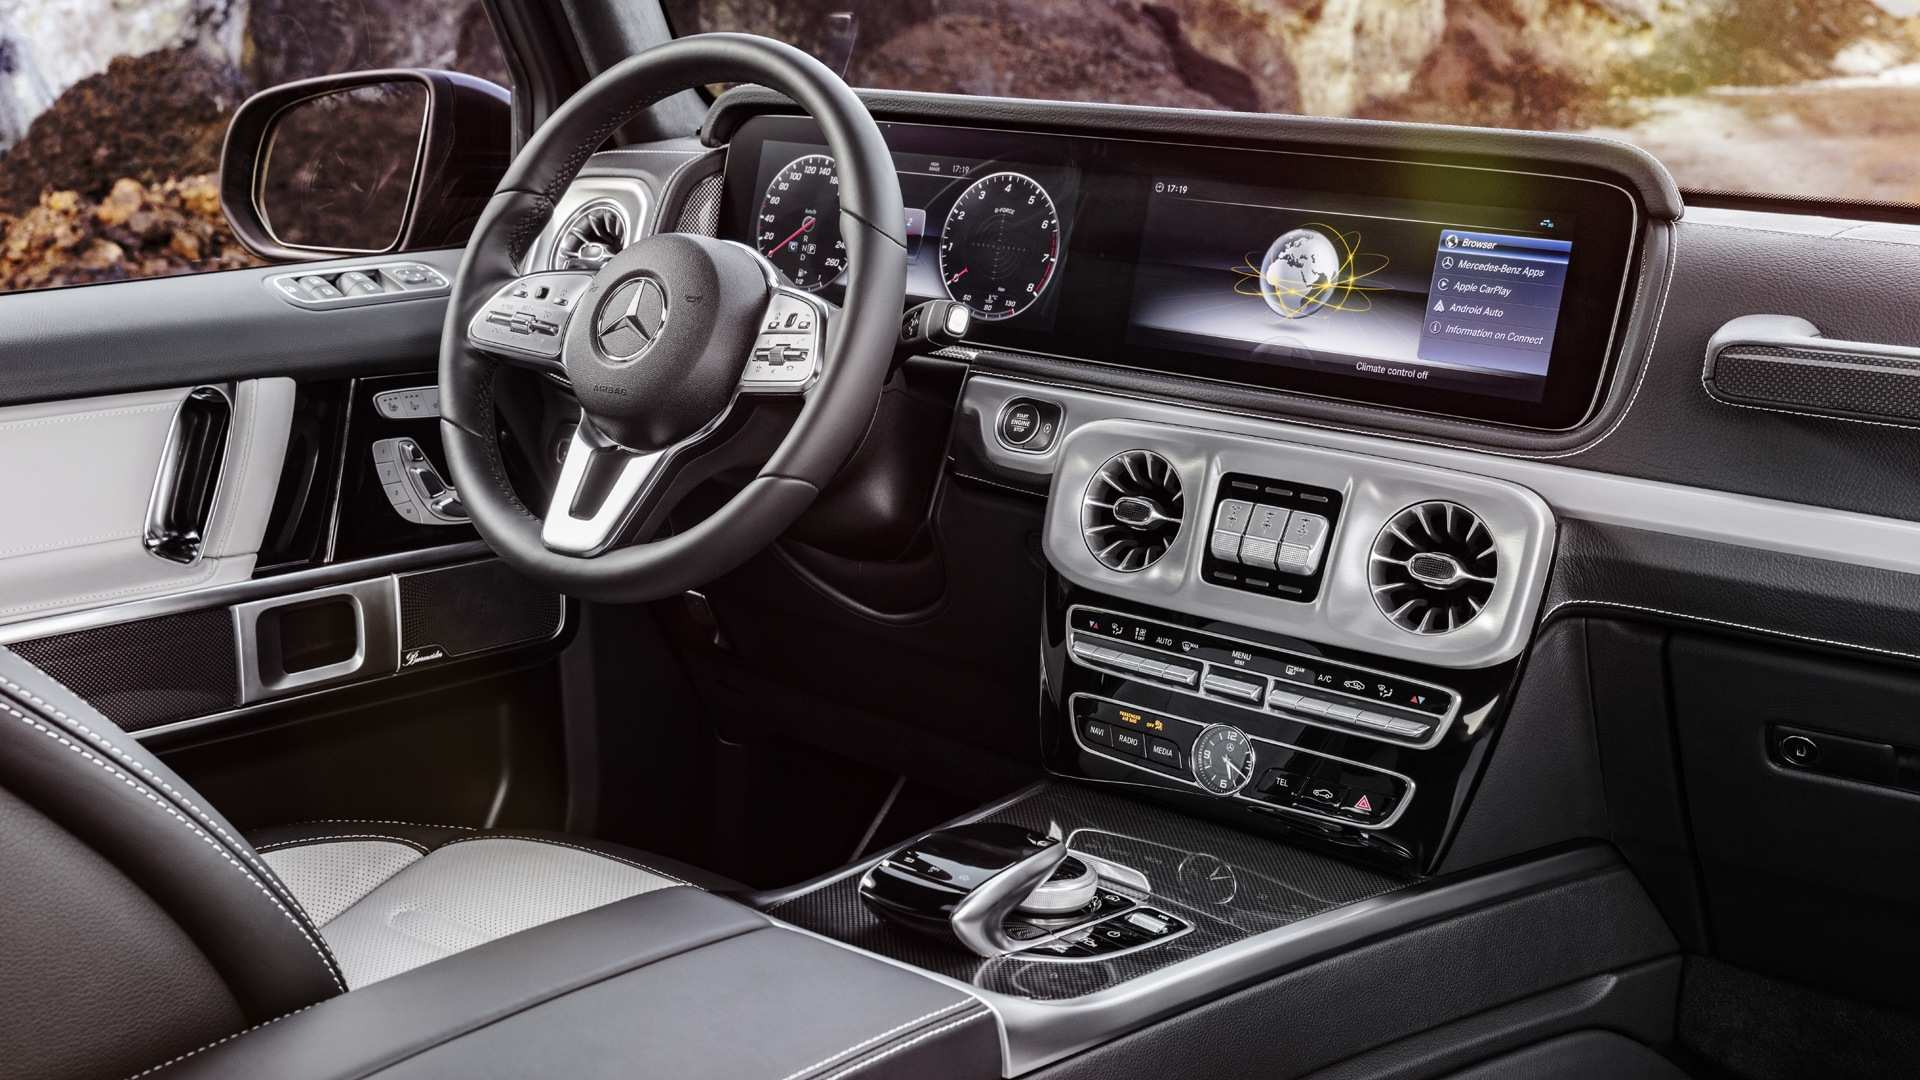 62 New Mercedes Interior 2019 Model with Mercedes Interior 2019